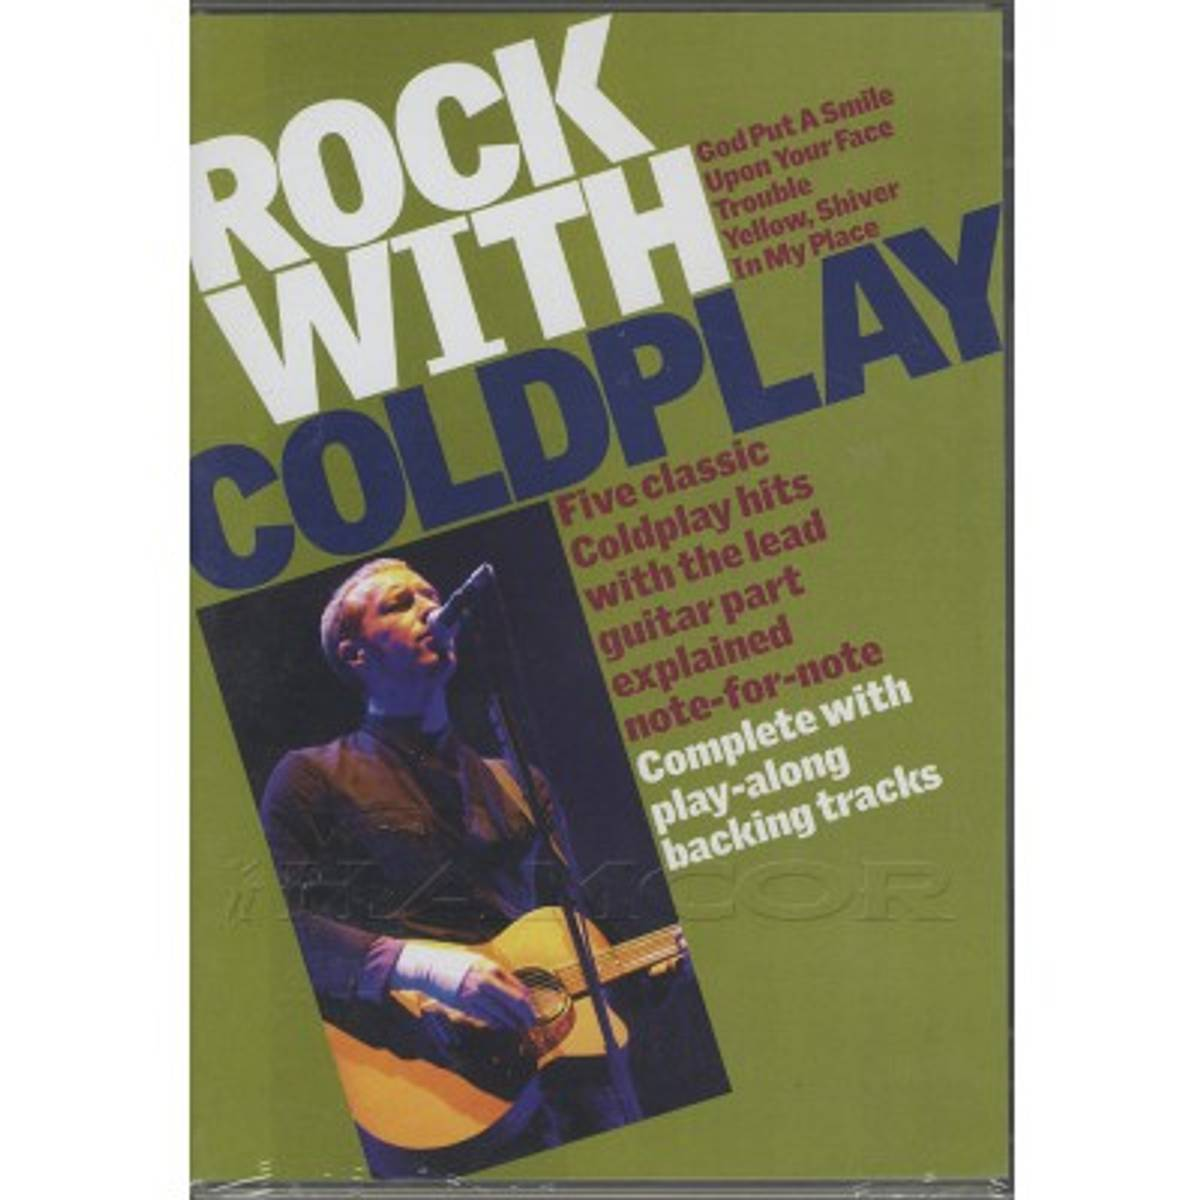 Coldplay DVD - Rock With Coldplay